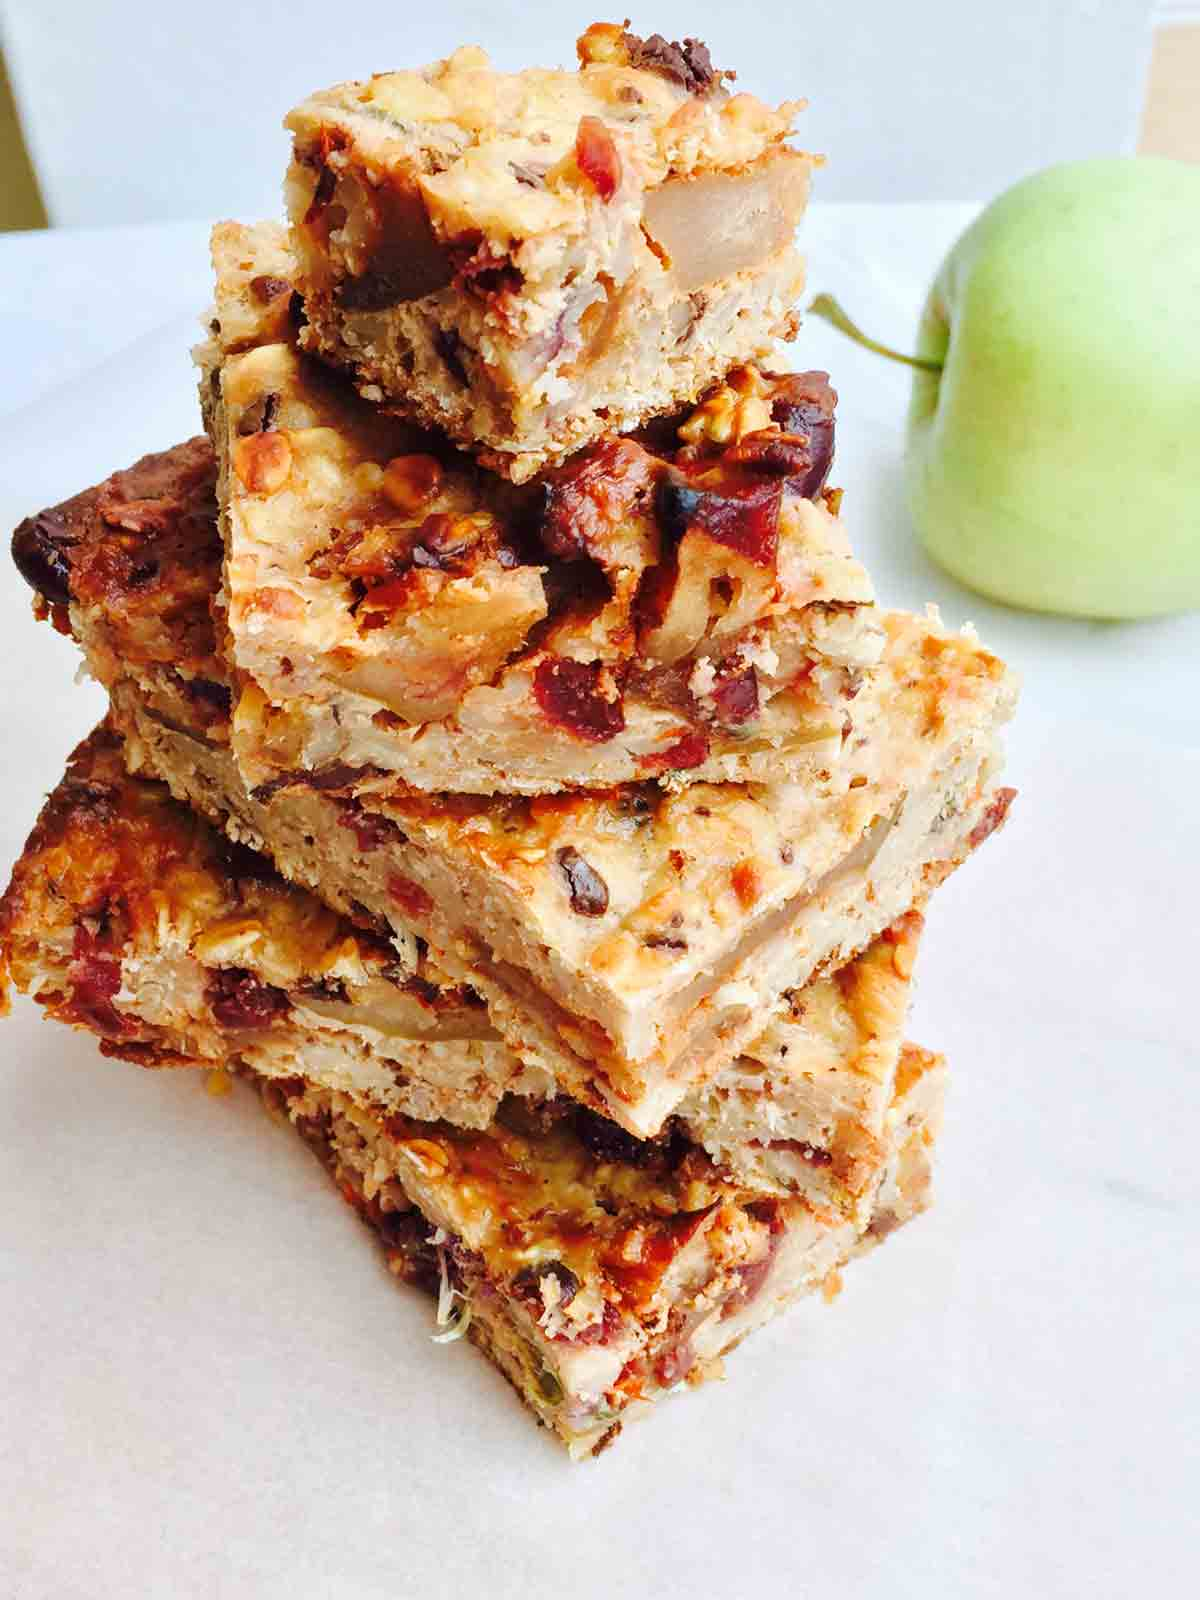 A tower of apple and cranberry slices of breakfast delight.